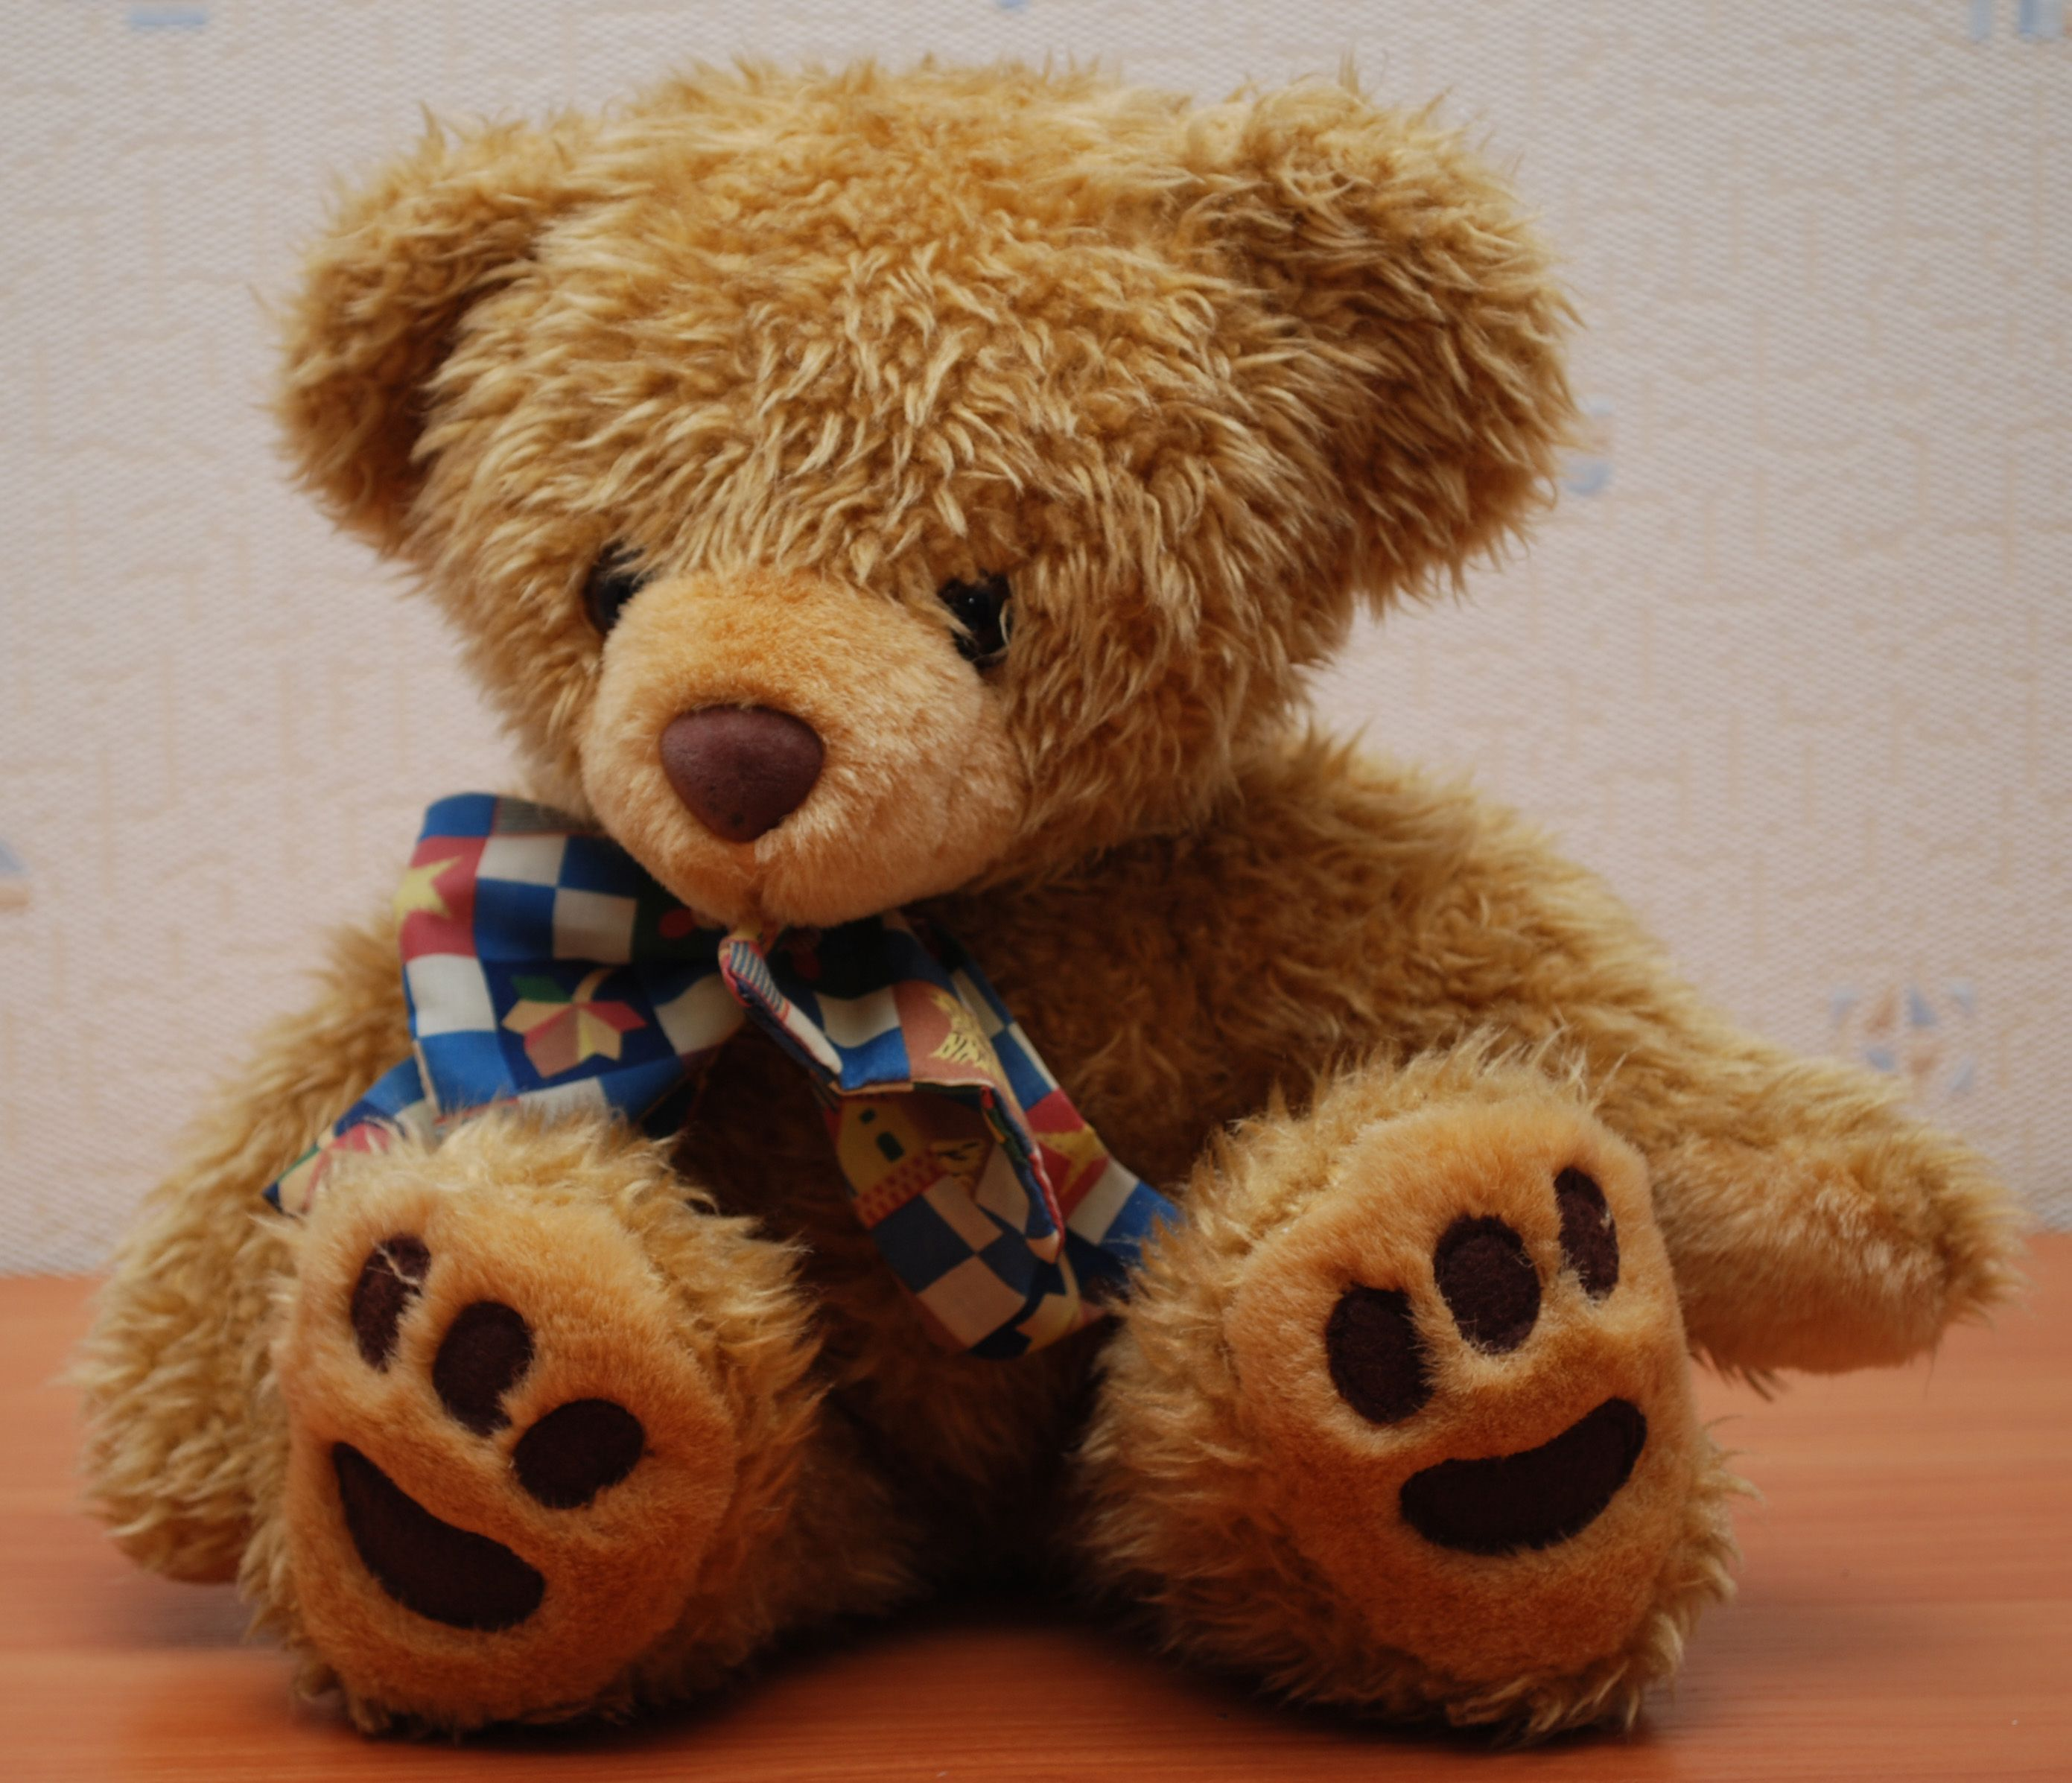 hd wallpapers download free teddy bear wallpaper with hq 1080p